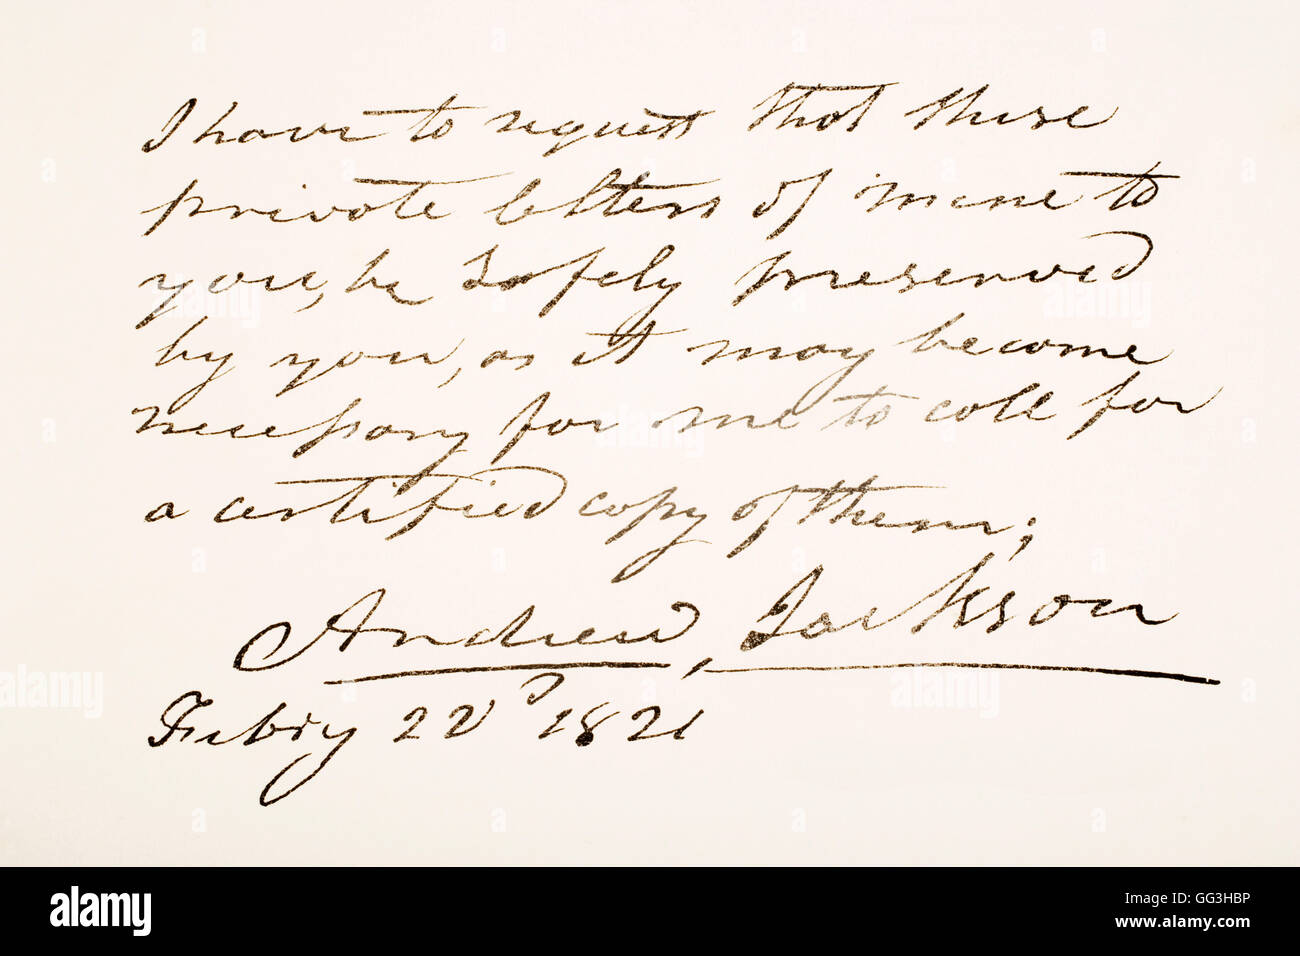 Andrew Jackson, 1767 - 1845. 7th President of the United States of America.  Hand writing sample. - Stock Image